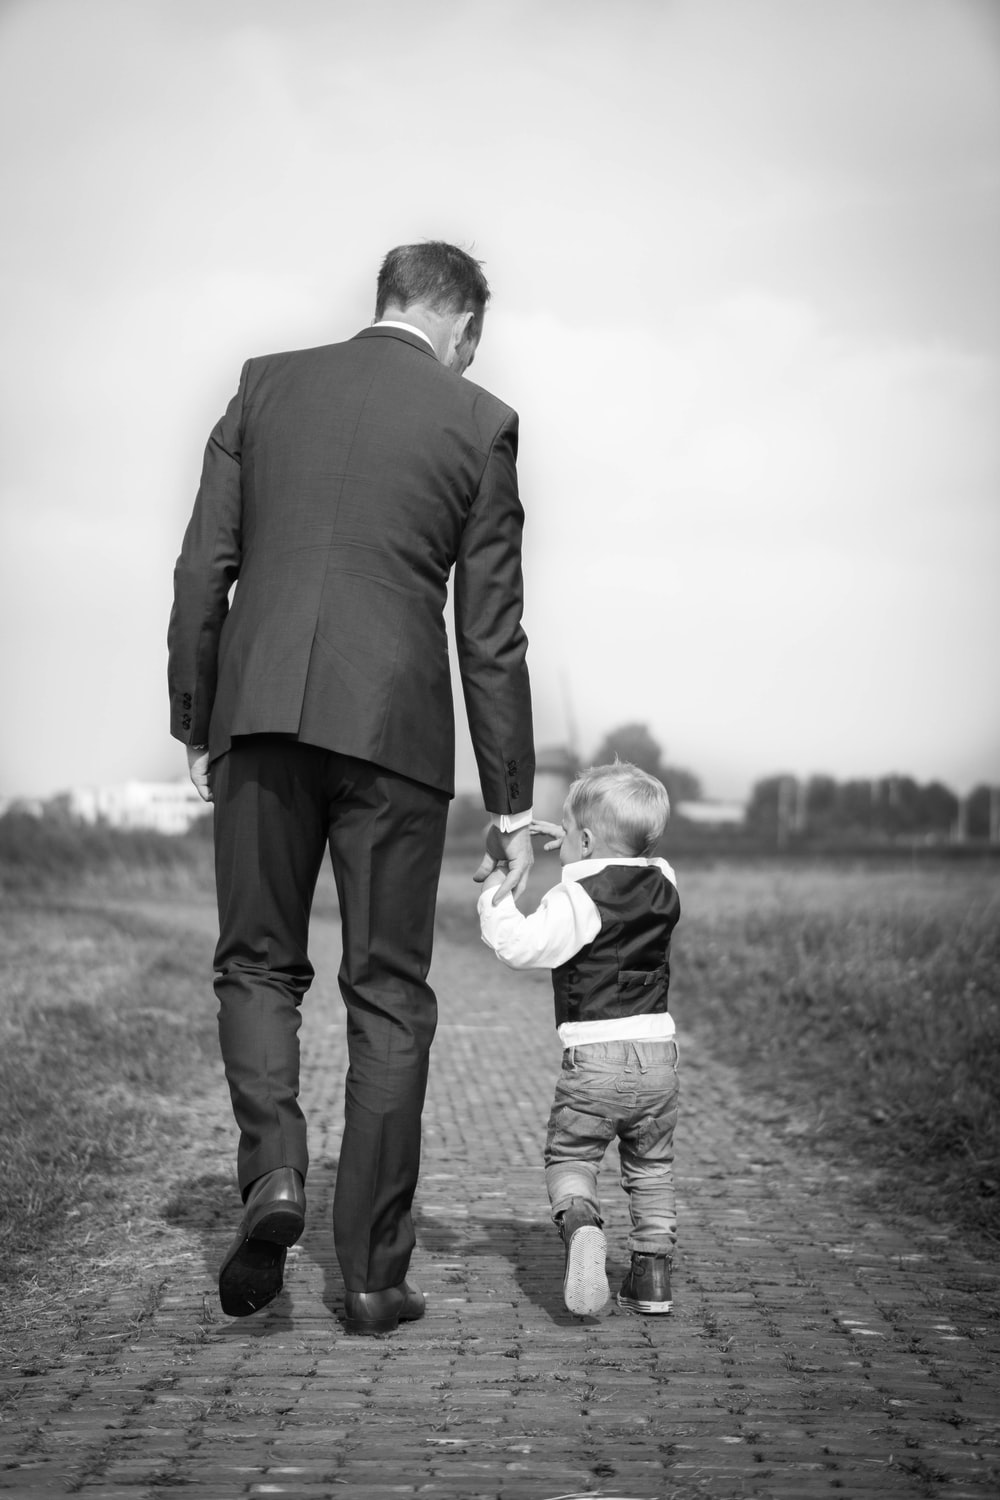 man walking holding boy